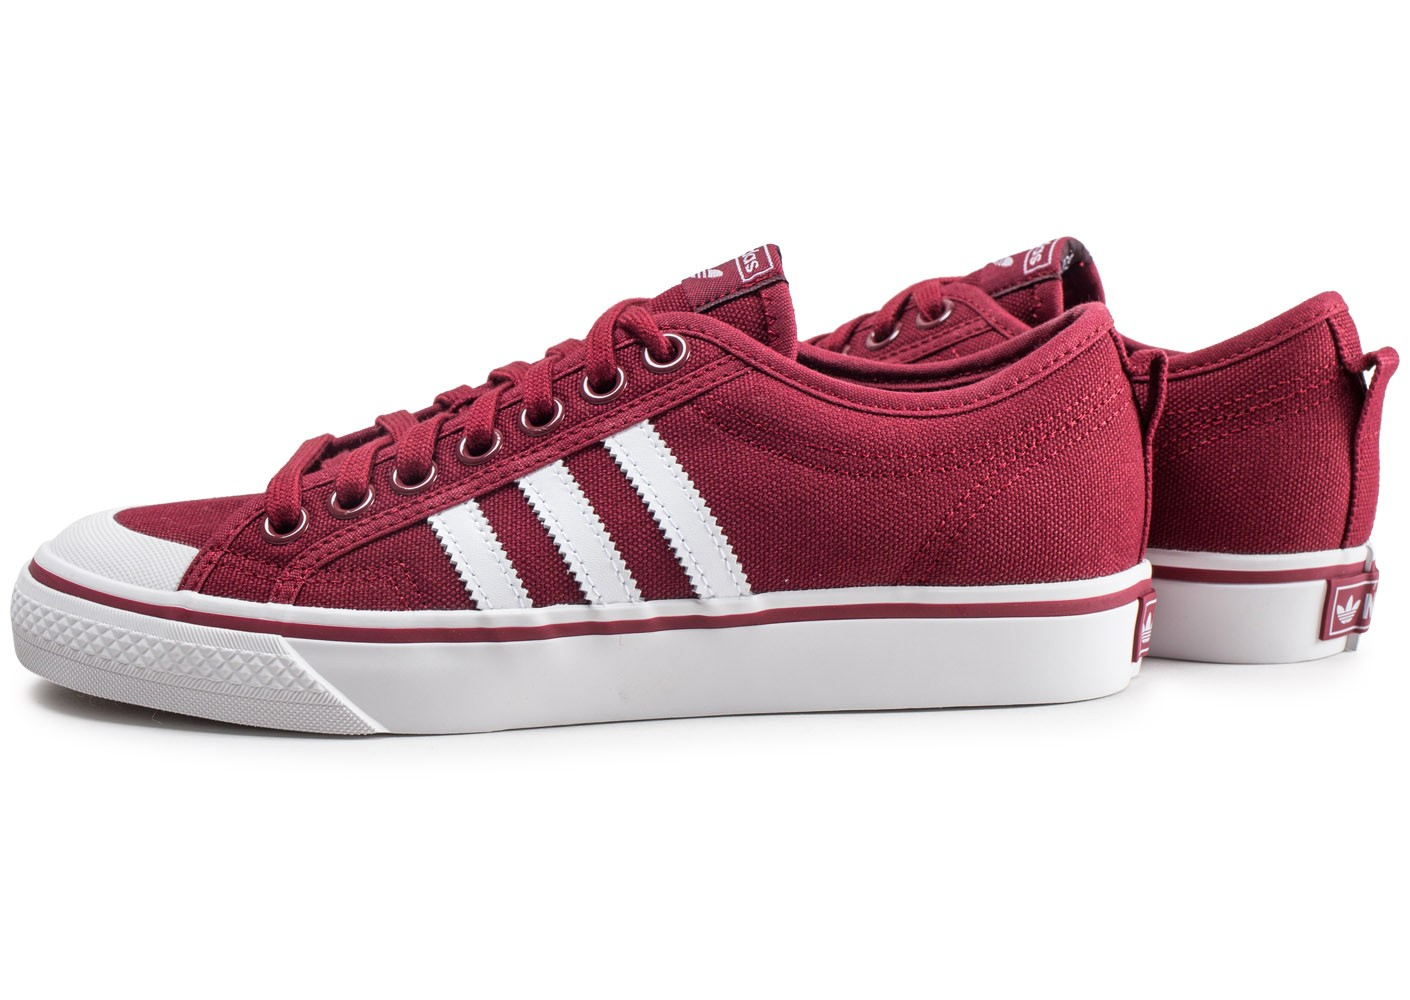 sneakers authentic quality stable quality Baskets Homme Adidas Chausport Bordeaux Nizza Chaussures SUpMzqV